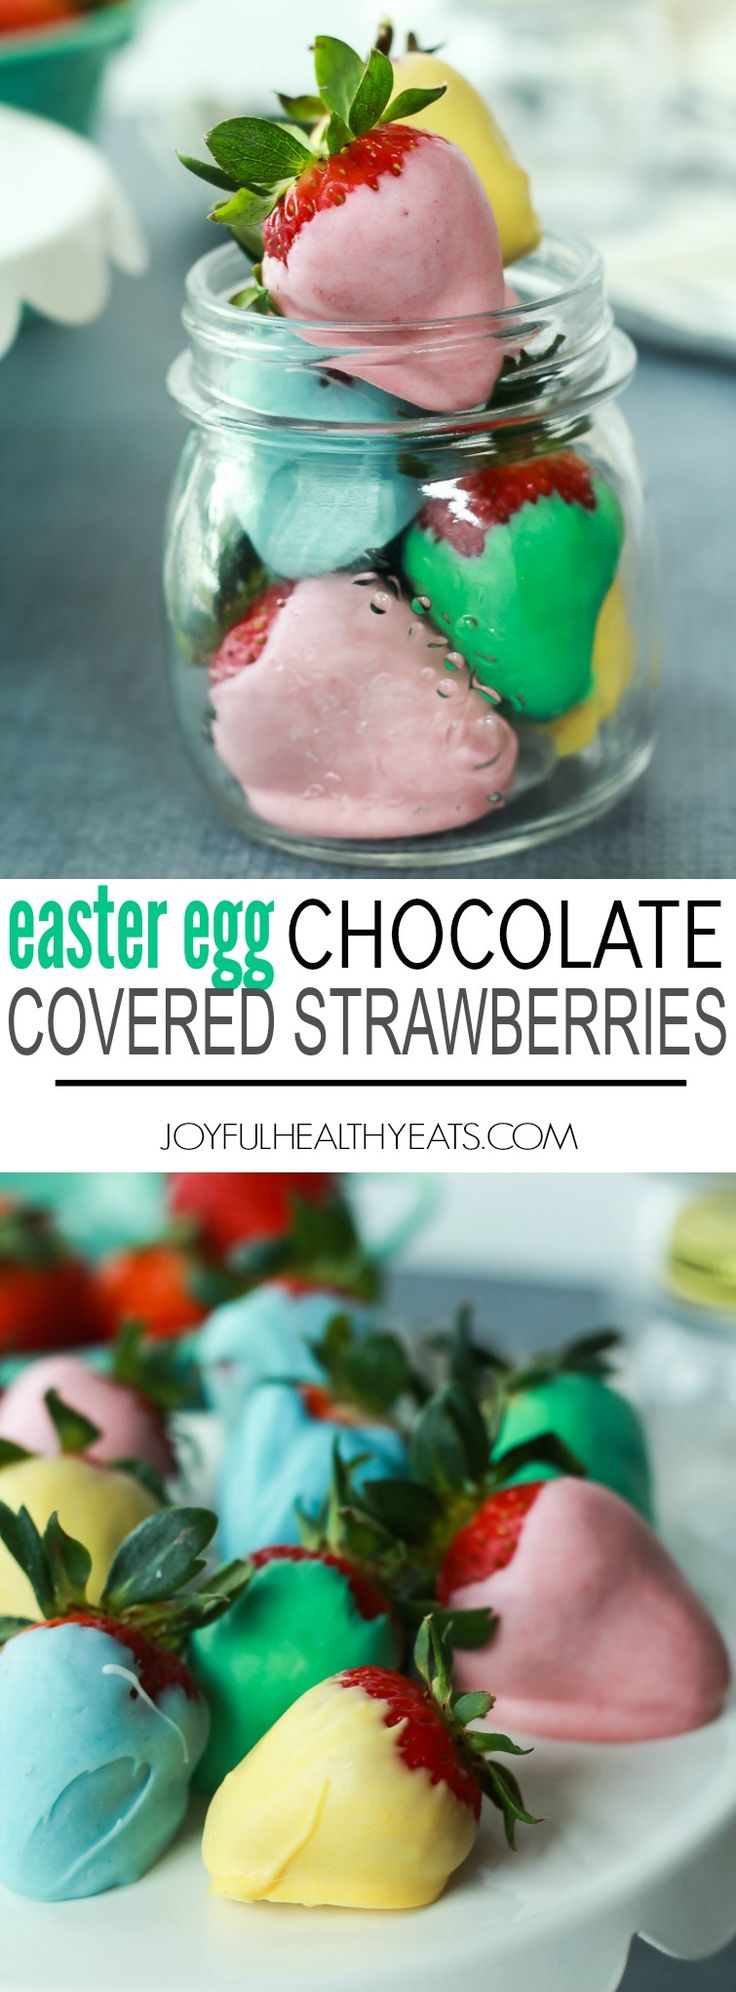 14 best holiday foodsgifts images on pinterest easter food easter egg chocolate covered strawberries negle Images